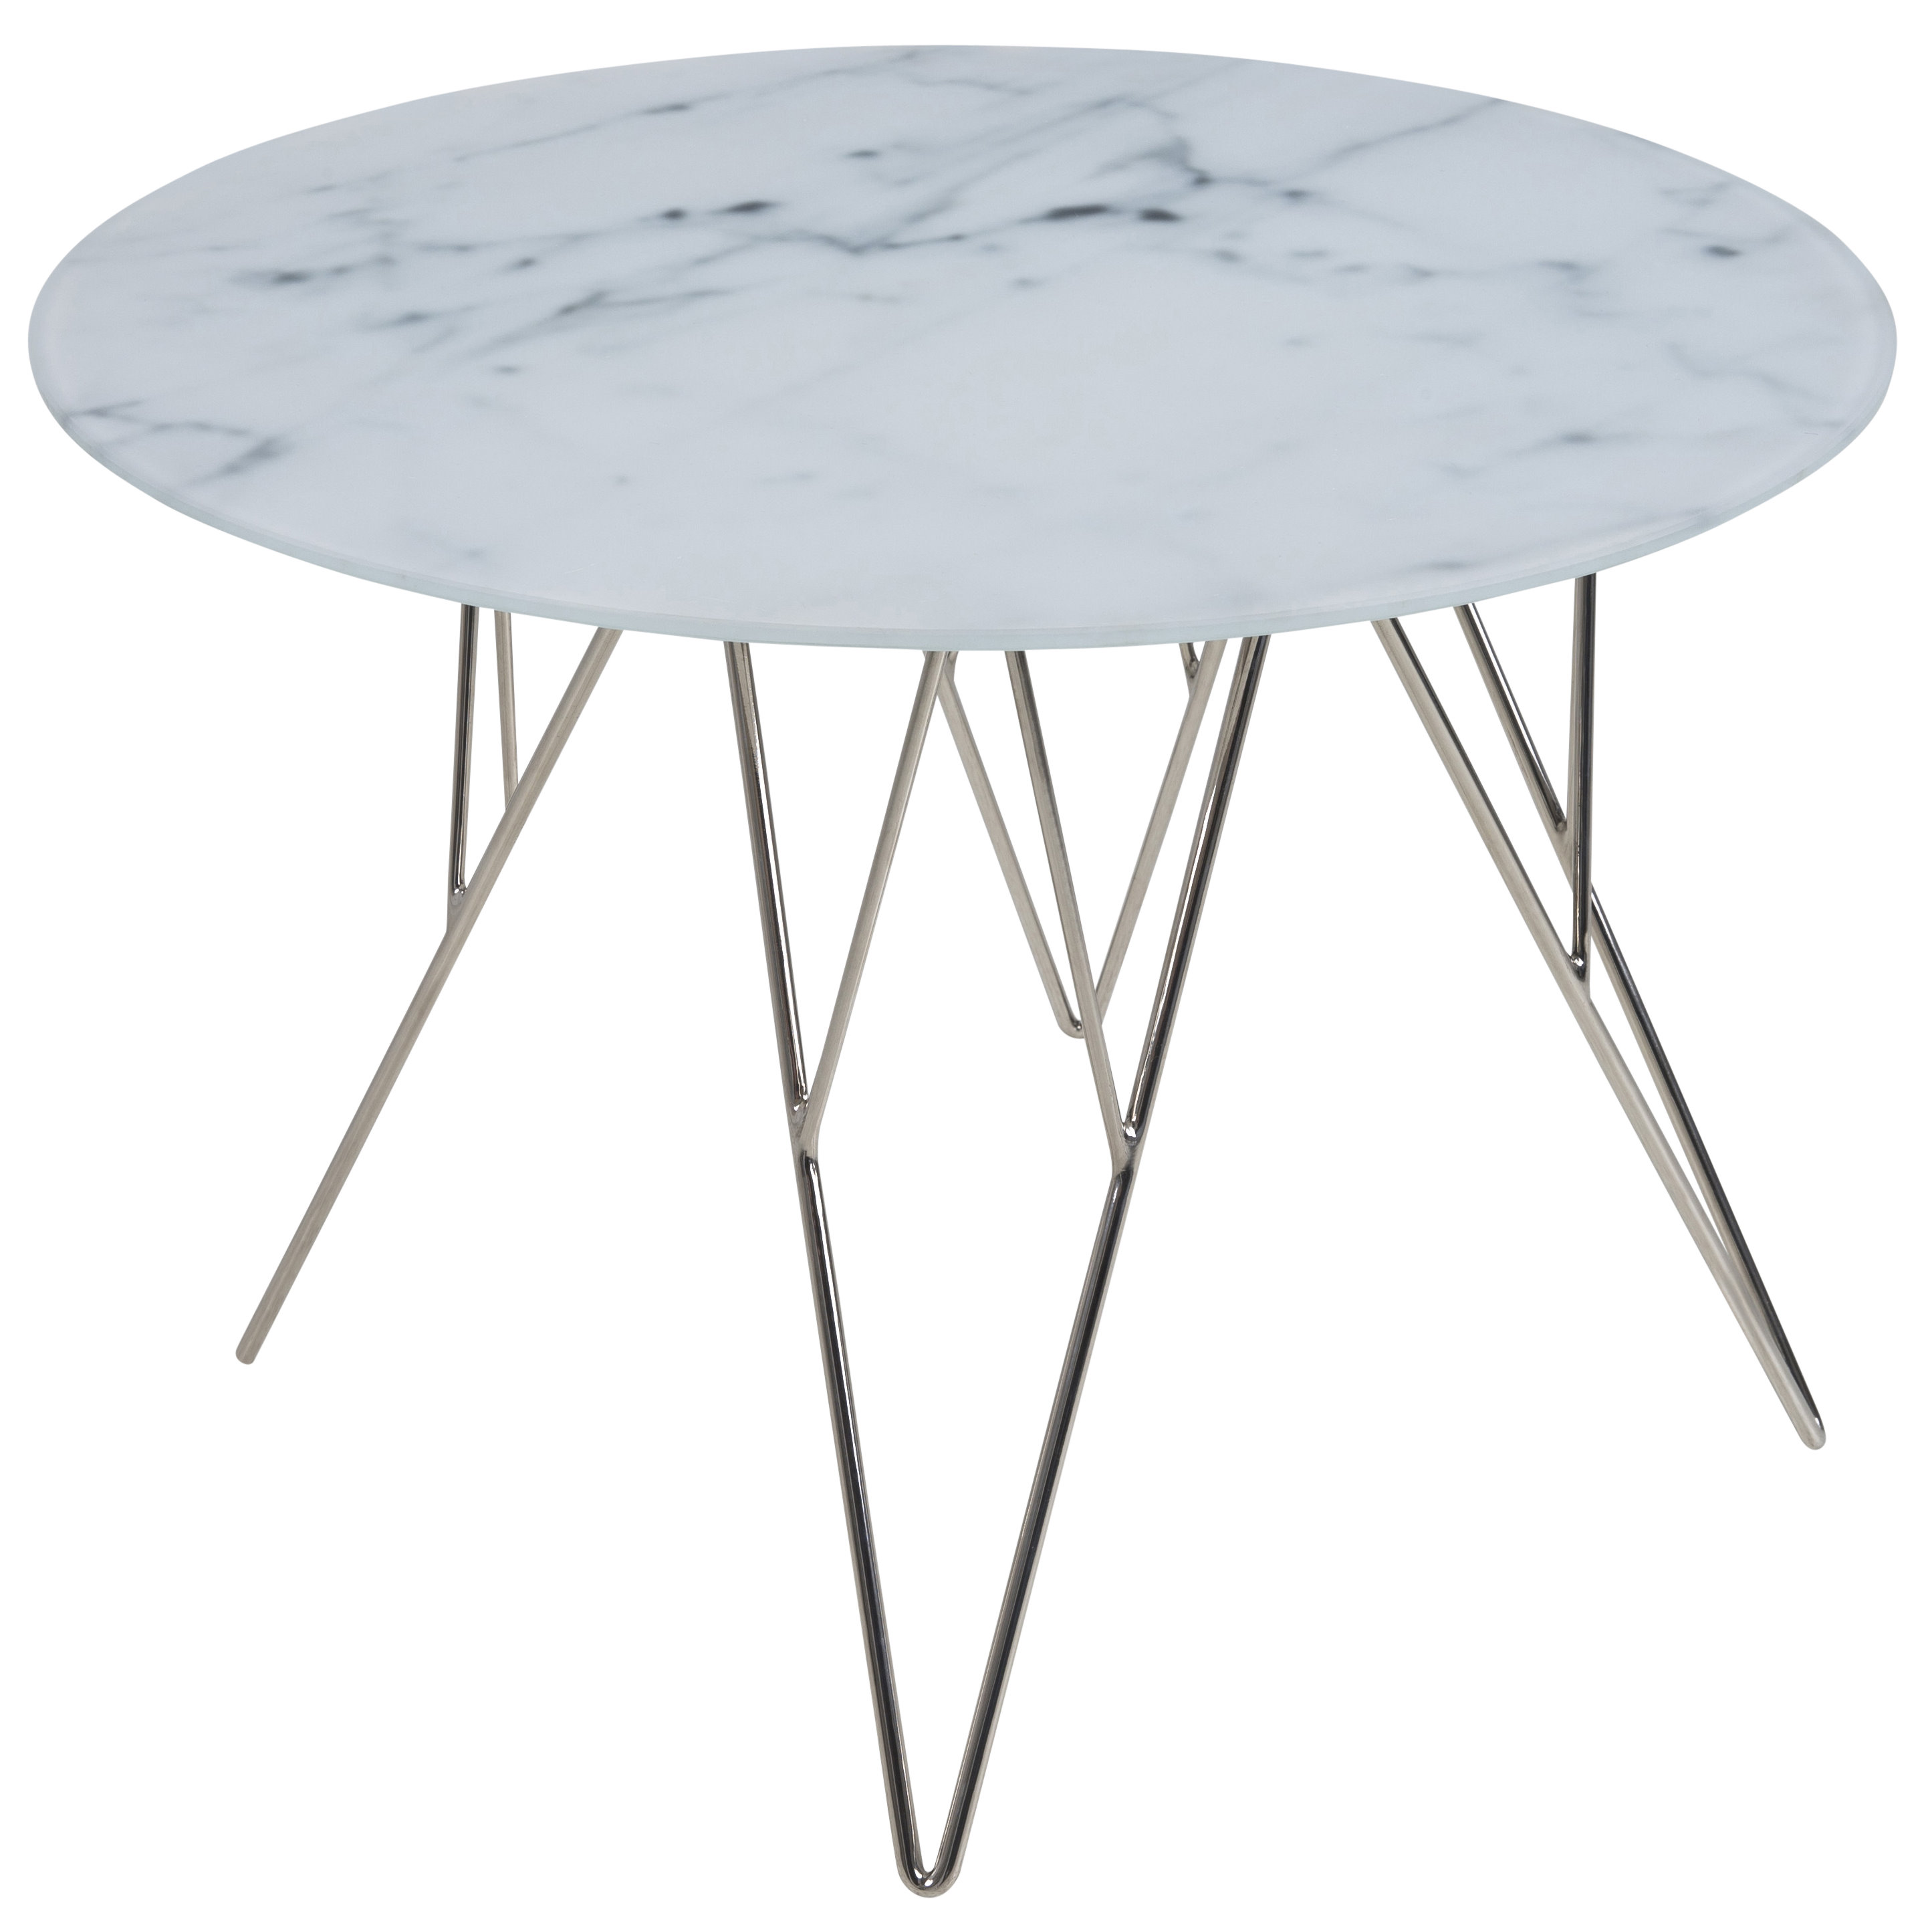 Marble Coffee Table For Living Room: Pkline Side Table ø55cm Marble Table Living Room Corner